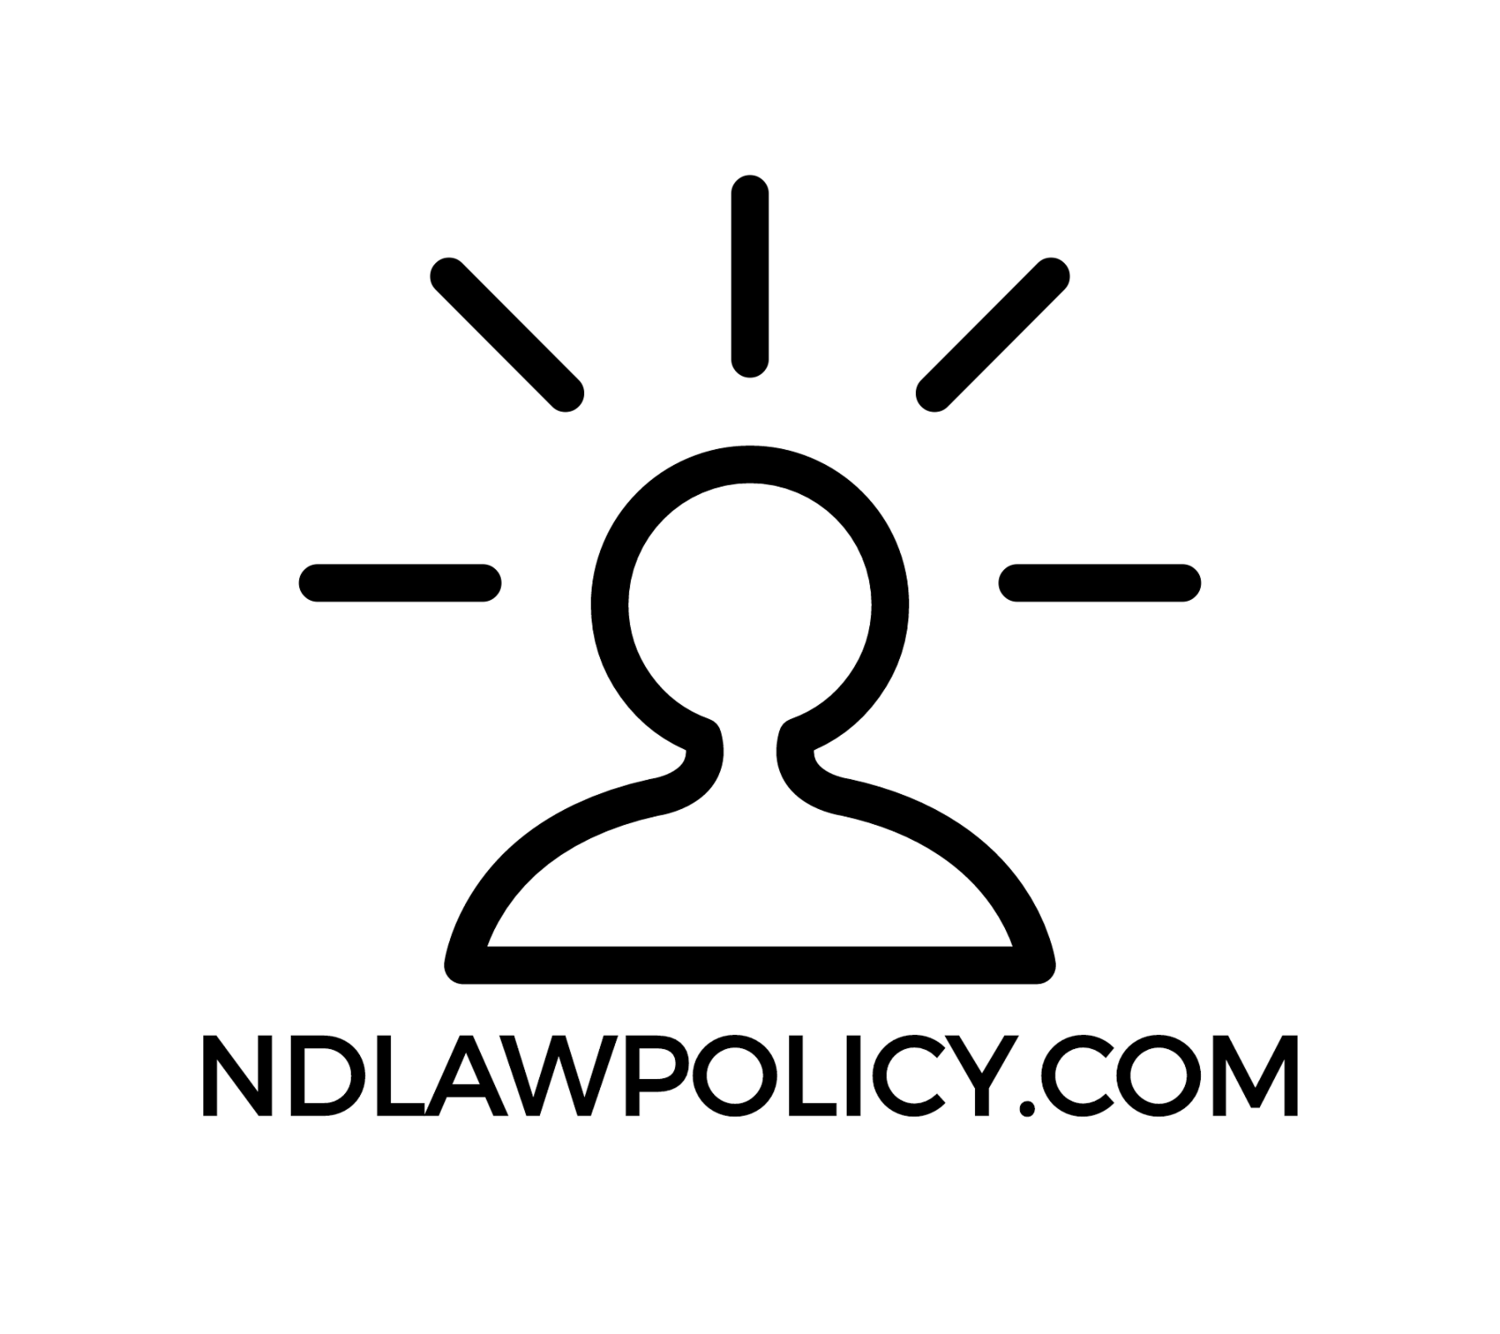 Nick Dranias Law & Policy